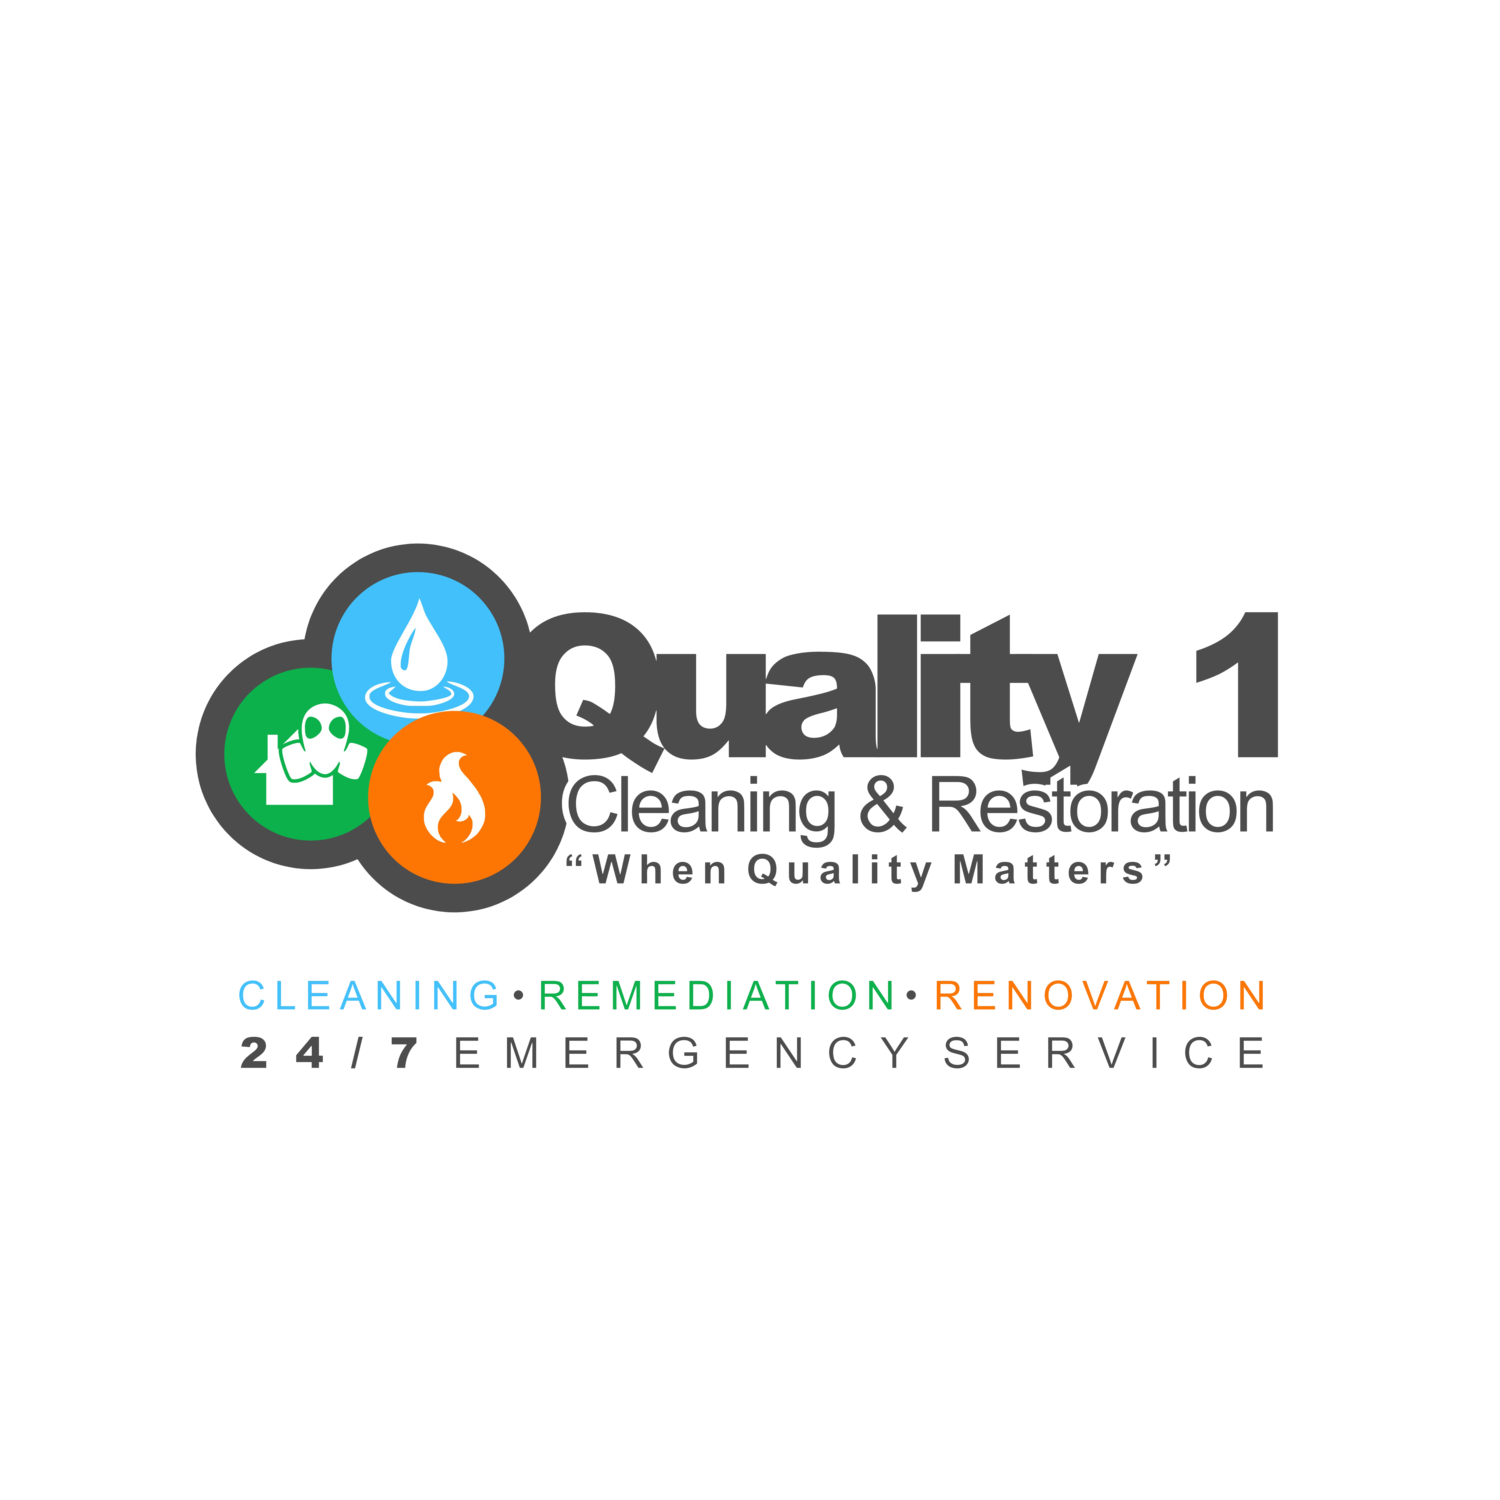 Quality 1 Cleaning & Restoration